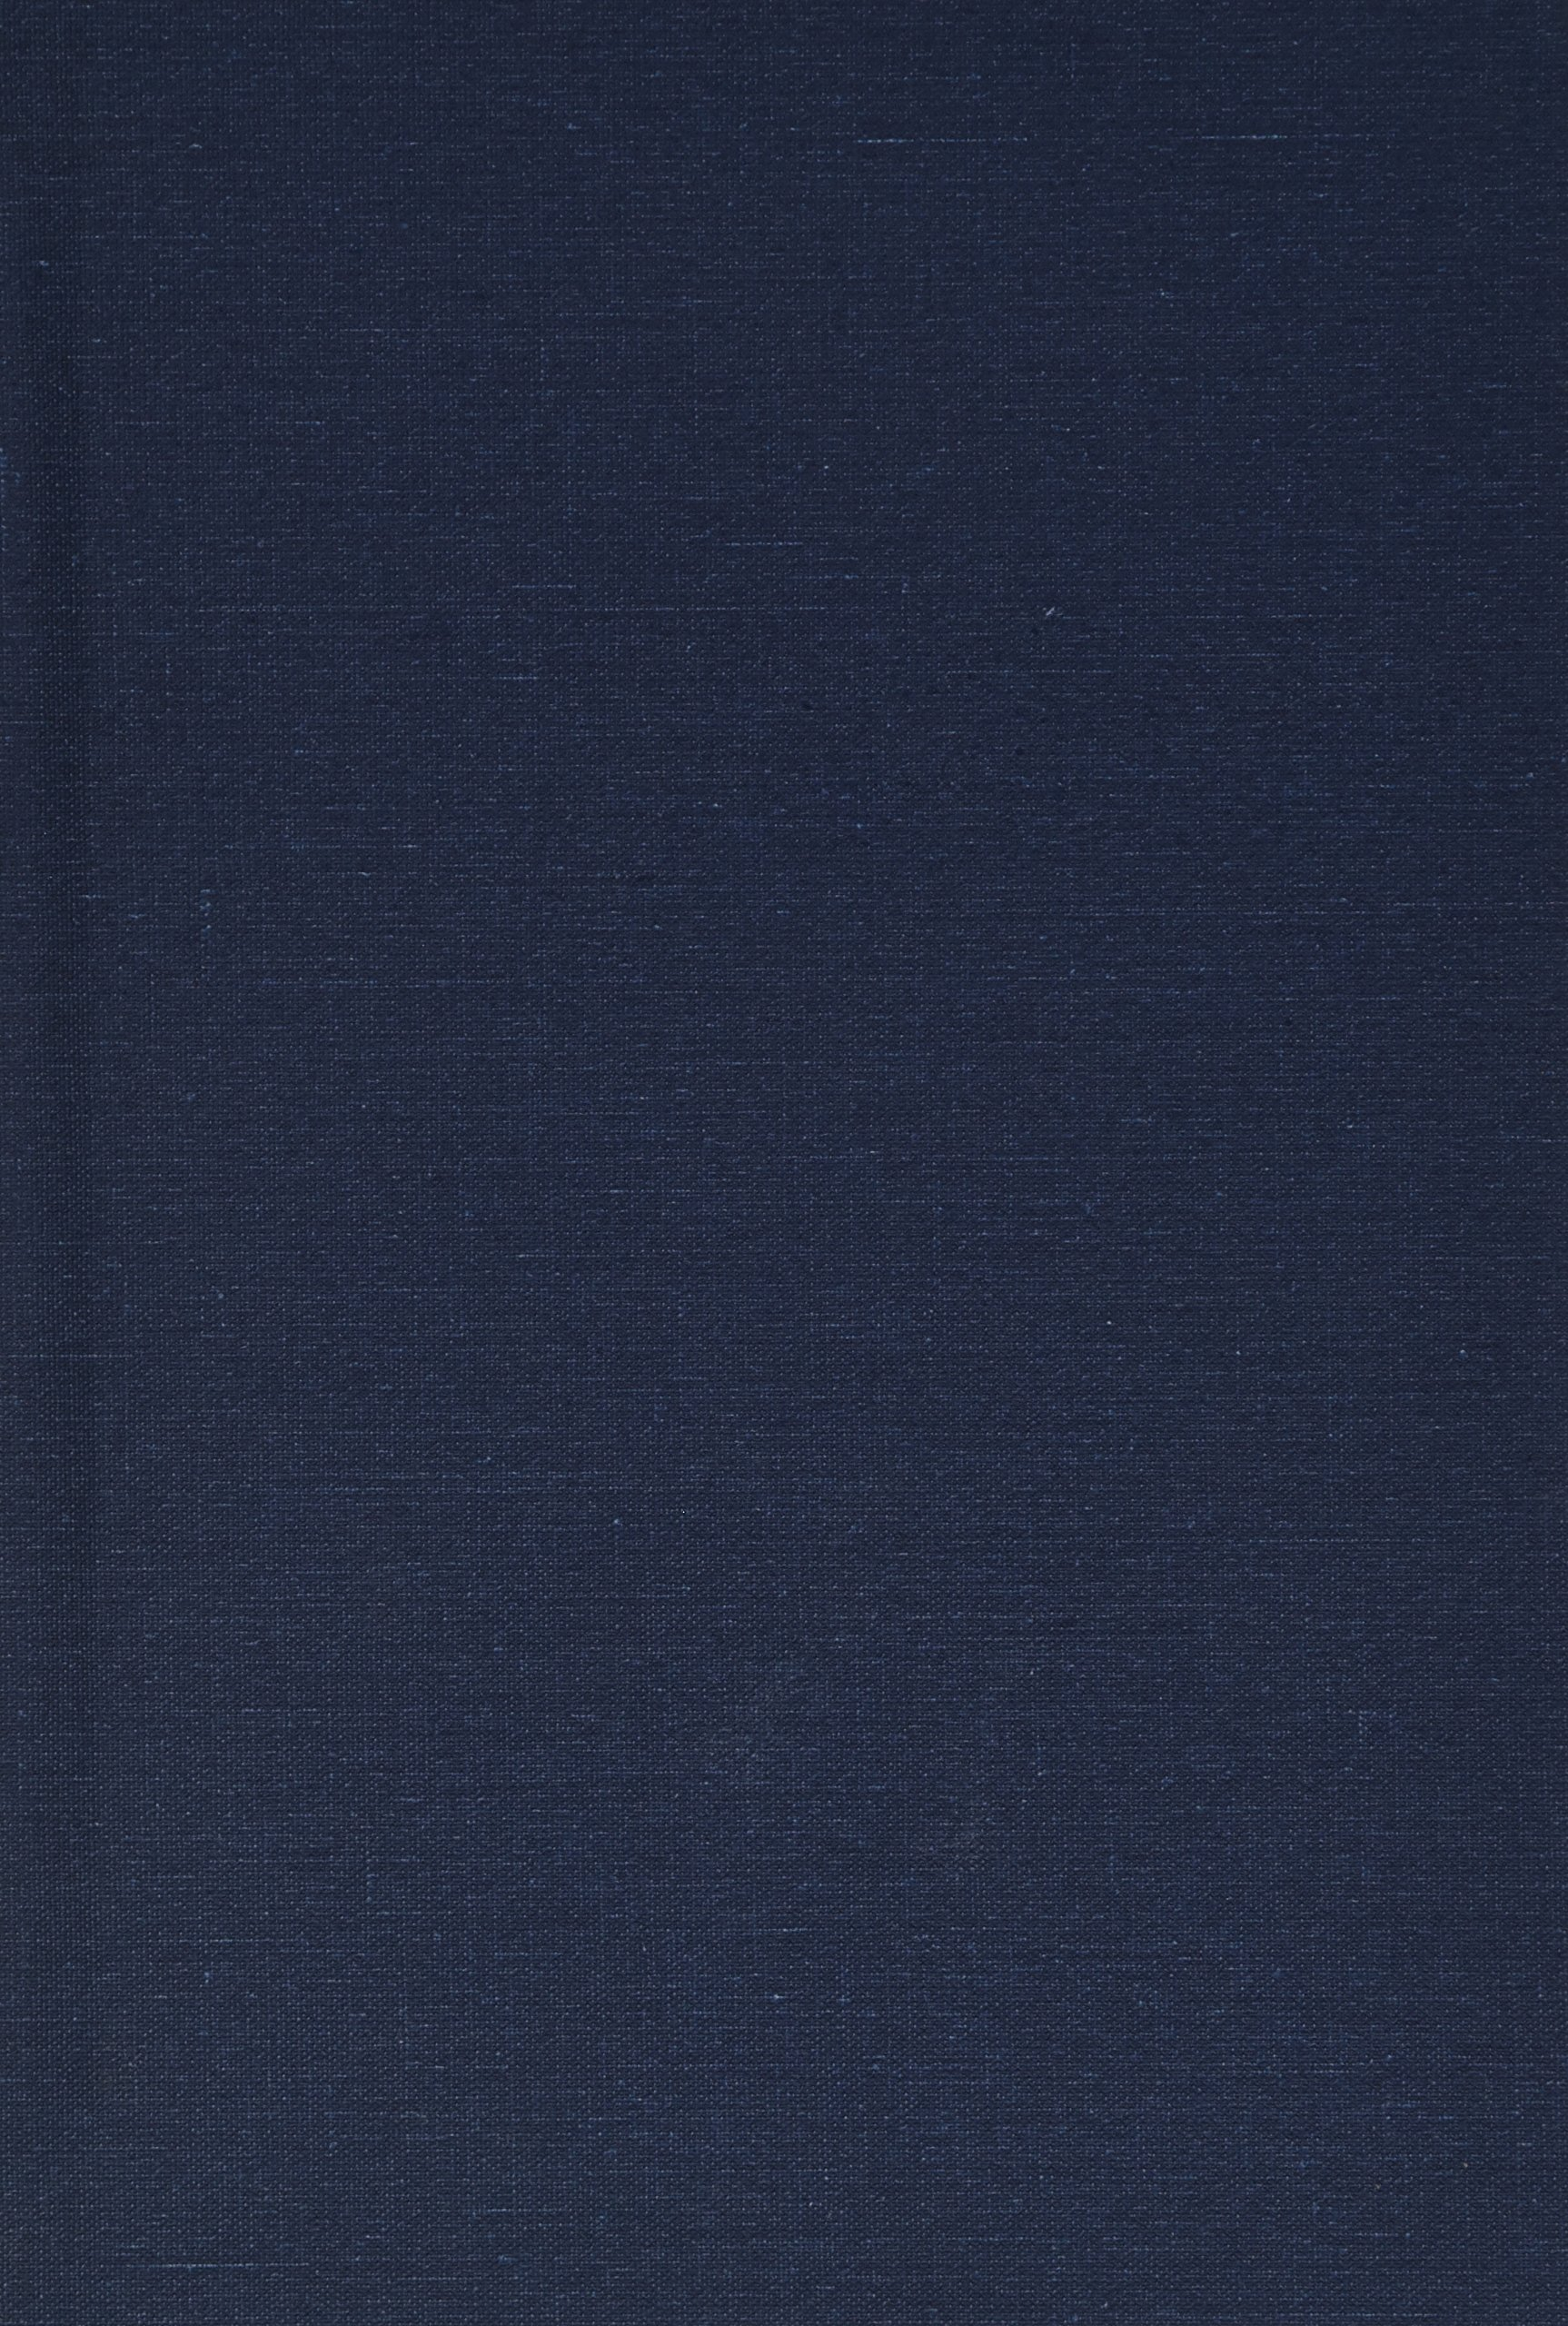 The Communication of Catholics with Schismatics (1947) (CUA Studies in Canon Law) by The Catholic University of America Press